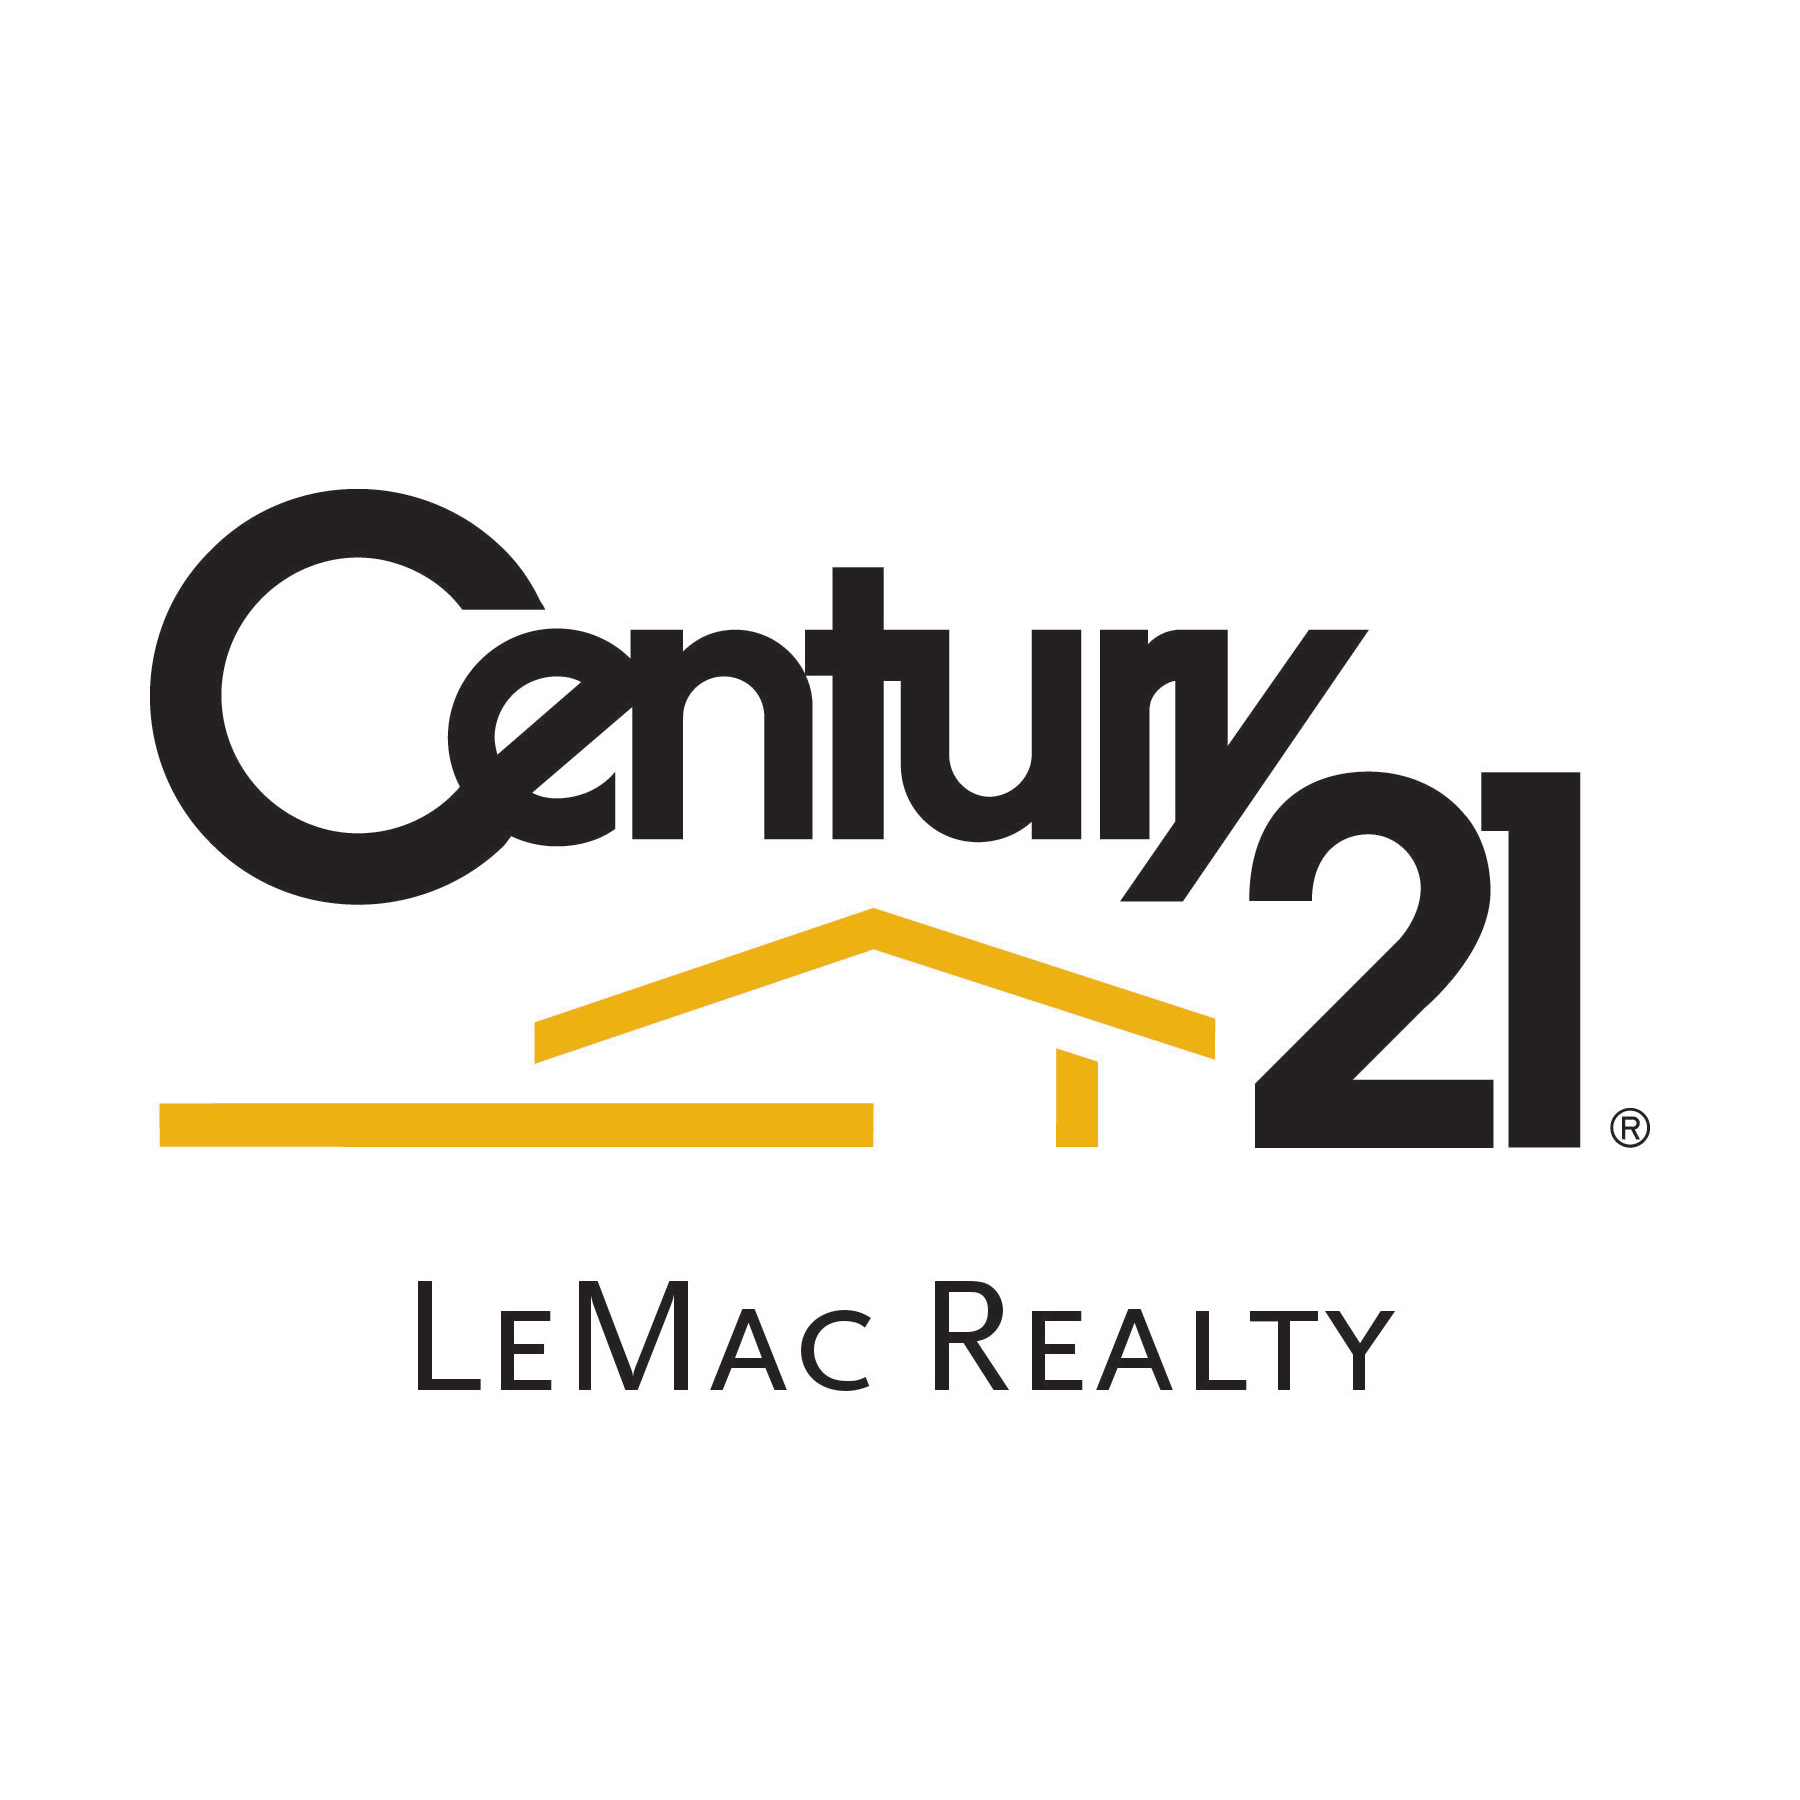 Century 21 LeMac Realty - Mountain Home, AR - Real Estate Agents